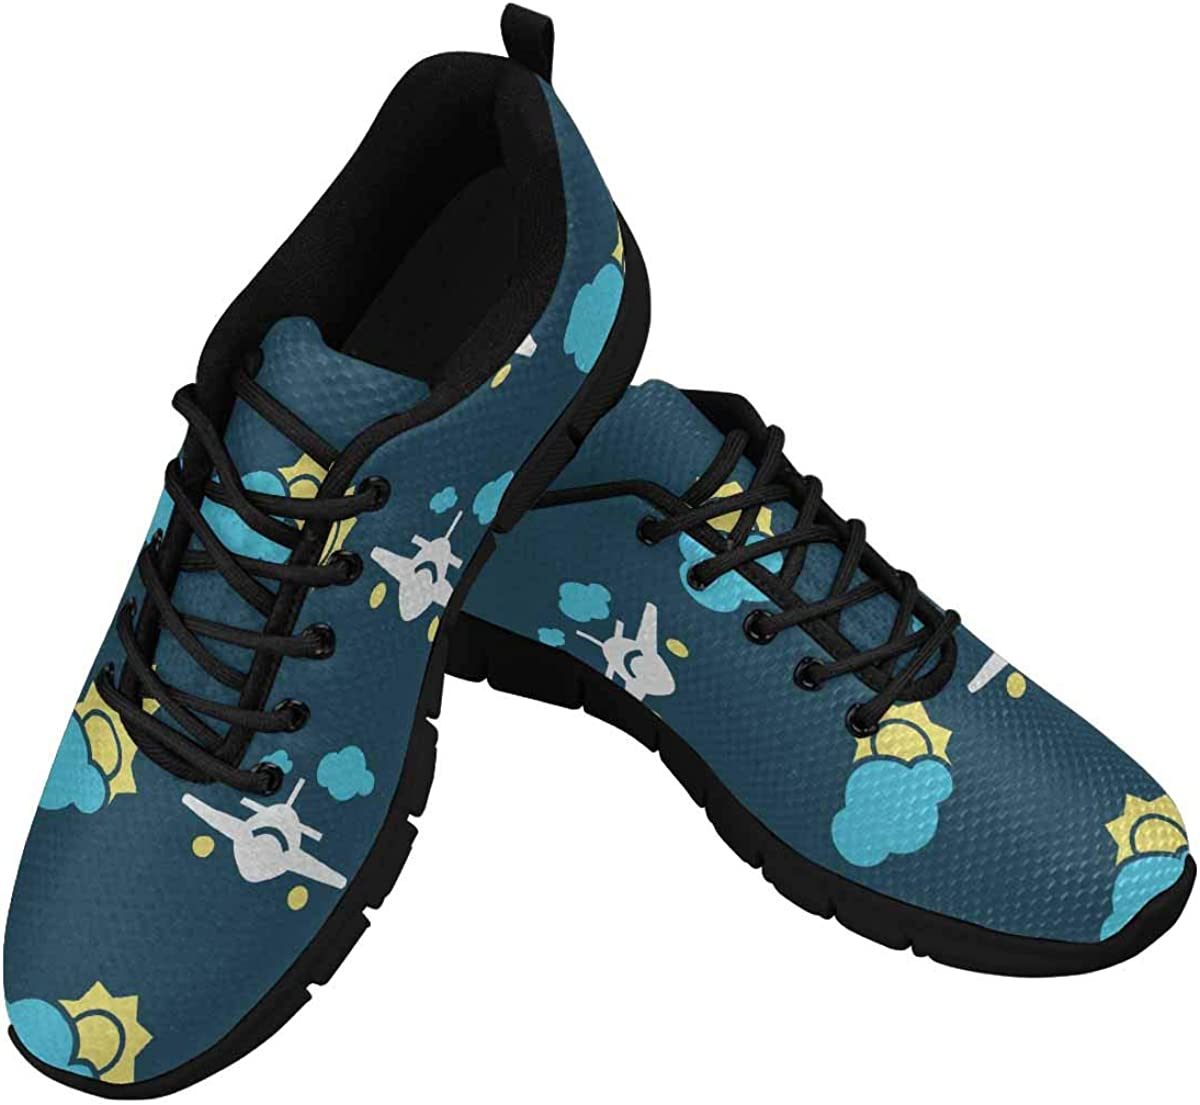 INTERESTPRINT Planes in Sky Women's Lightweight Athletic Casual Gym Sneakers